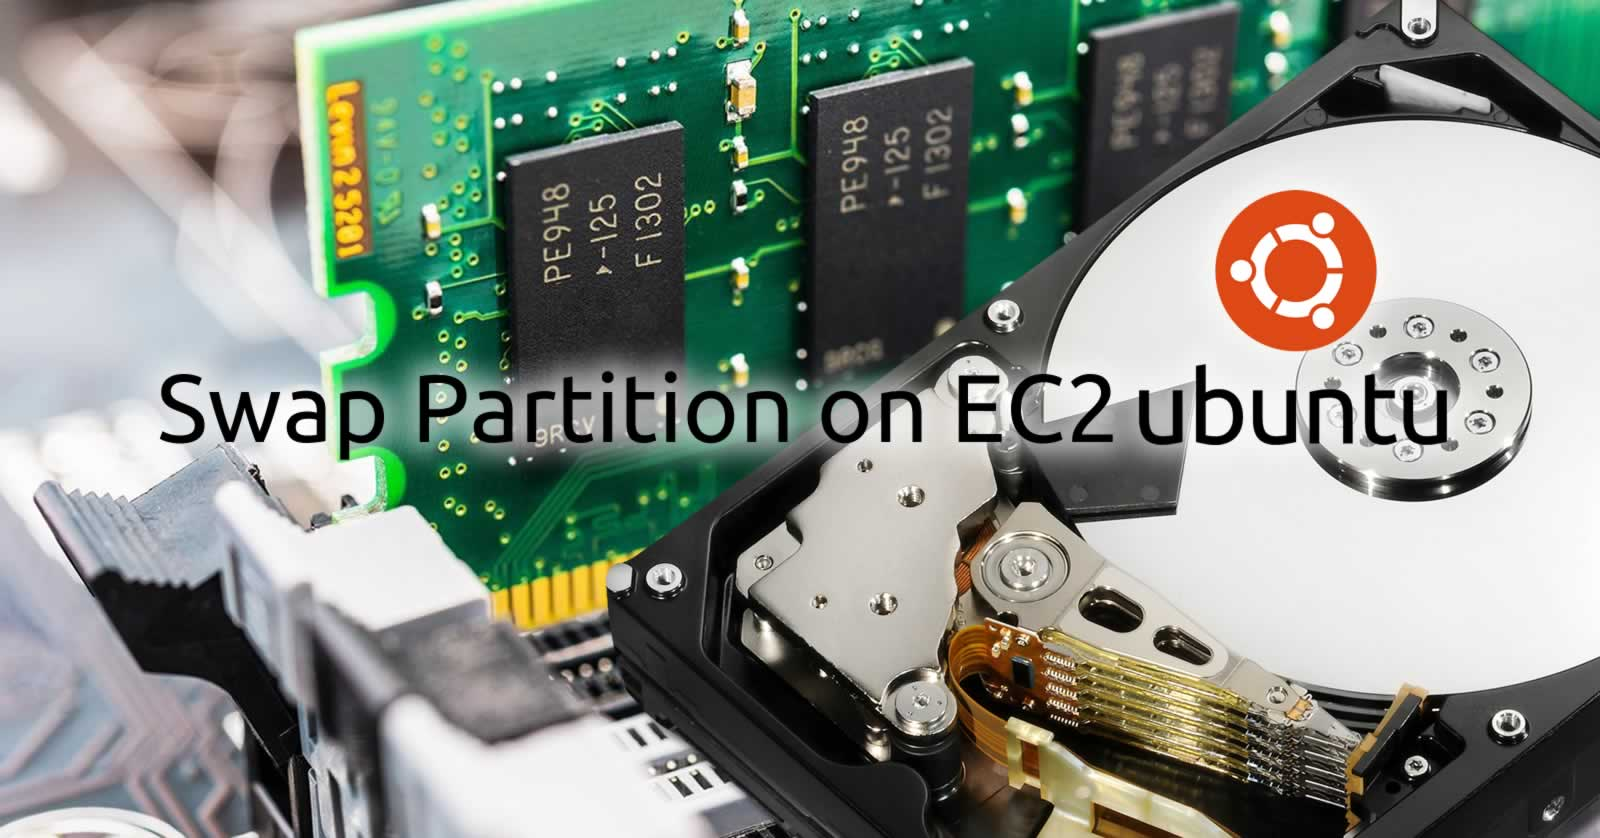 Swap Partition on EC2 Ubuntu